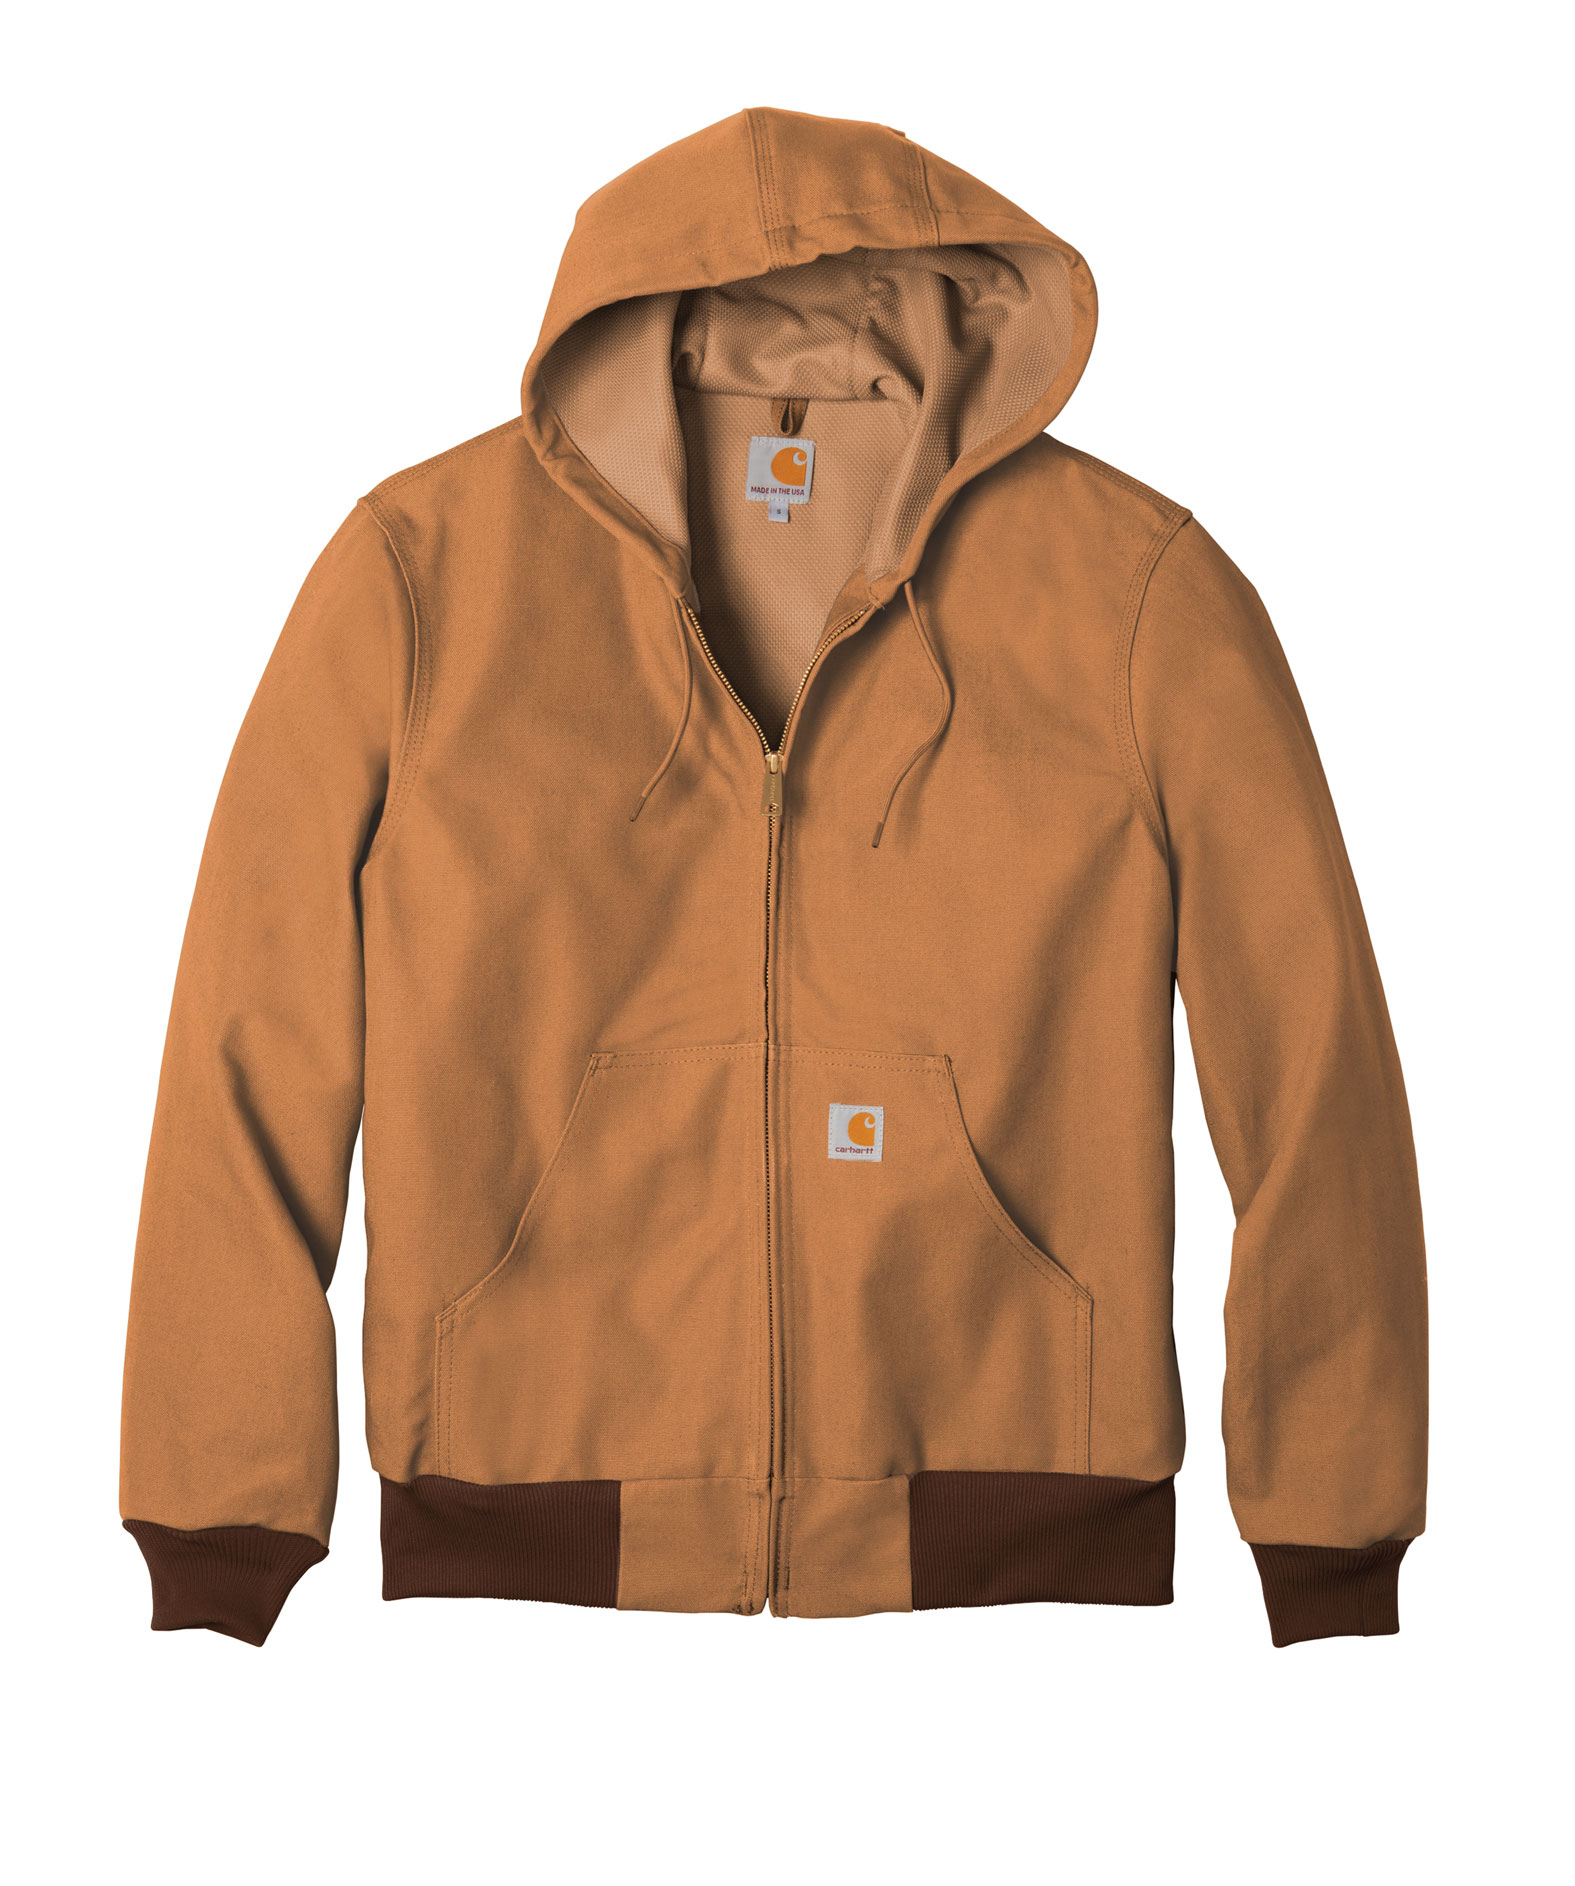 Carhartt Tall Duck Active Jacket Water Repellent w/Thermal Lined